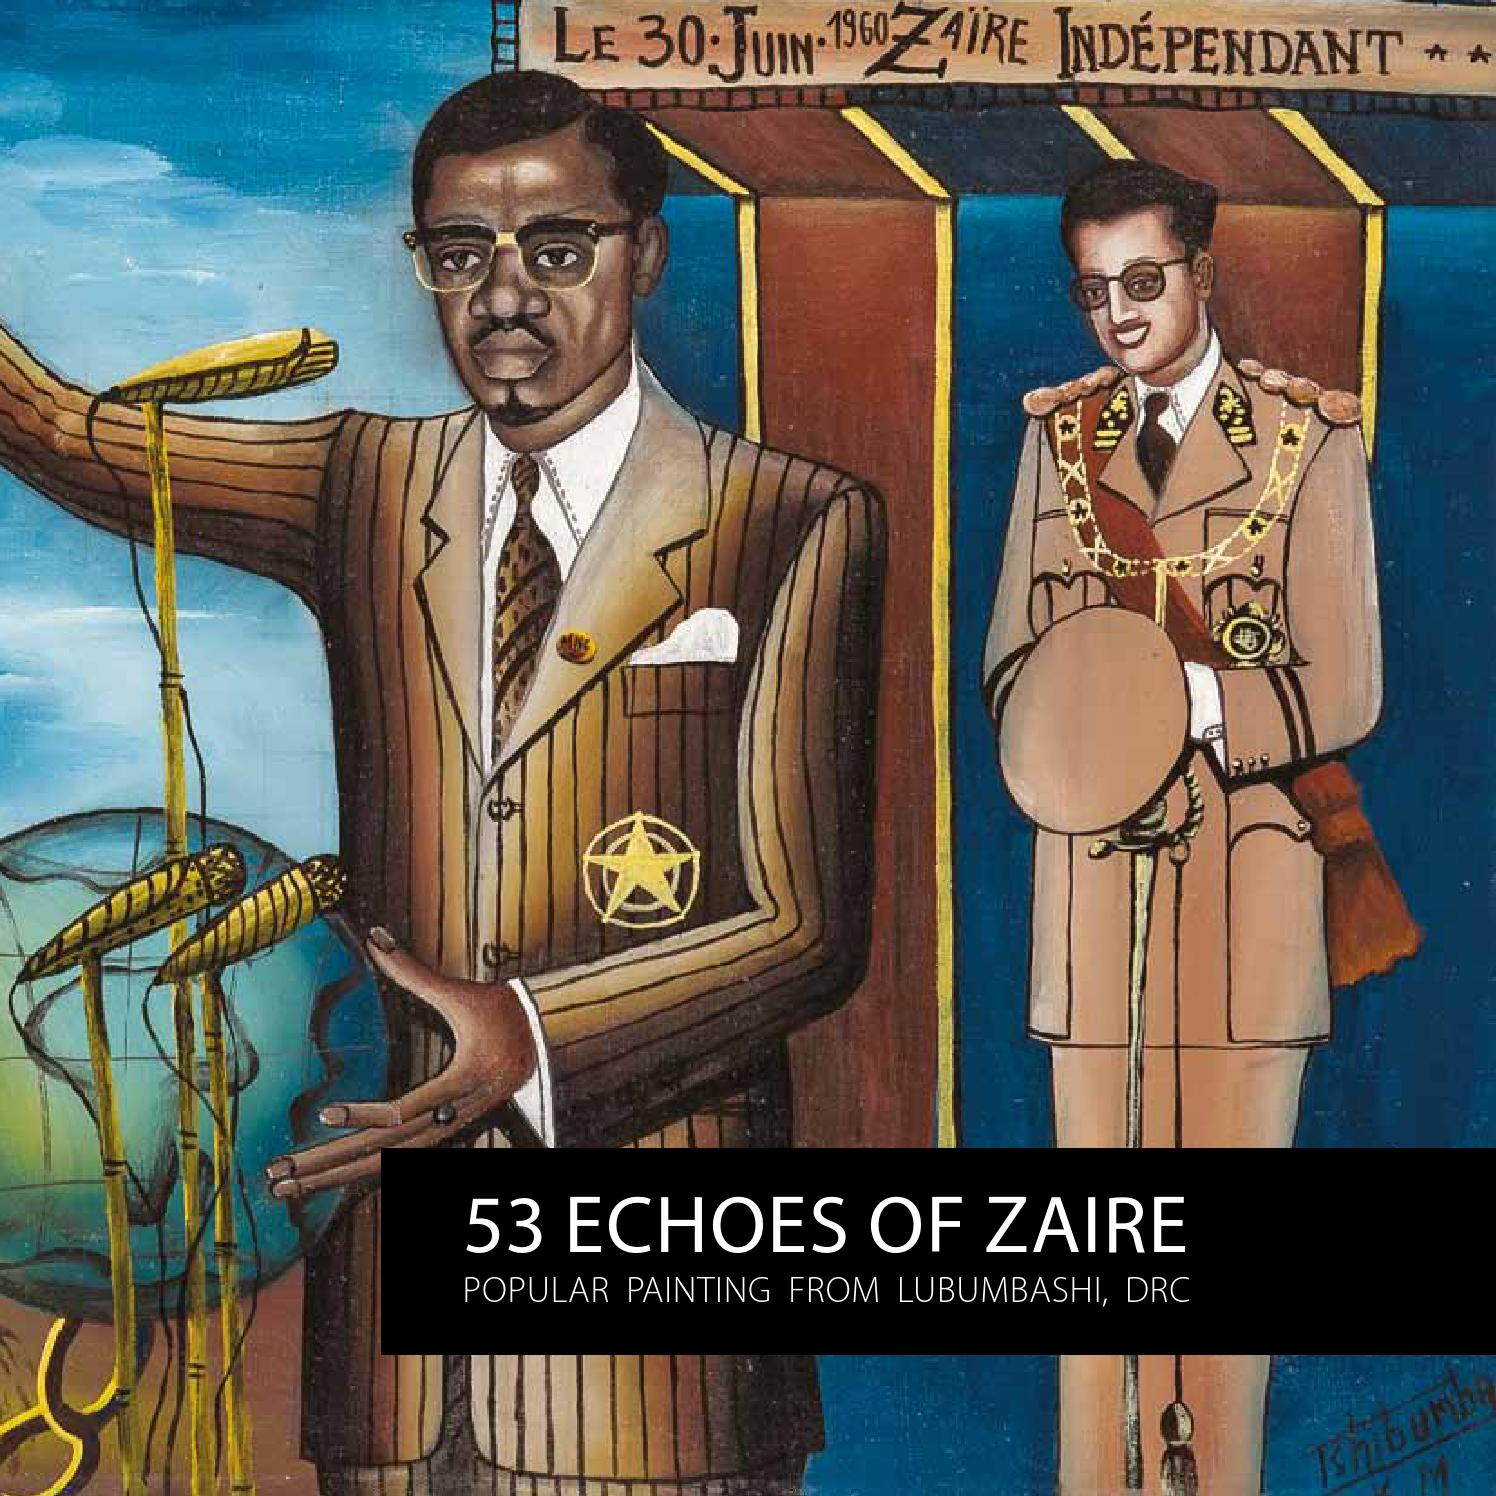 53 ECHOES OF ZAIRE: POPULAR PAINTING FROM LUBUMBASHI, DRC